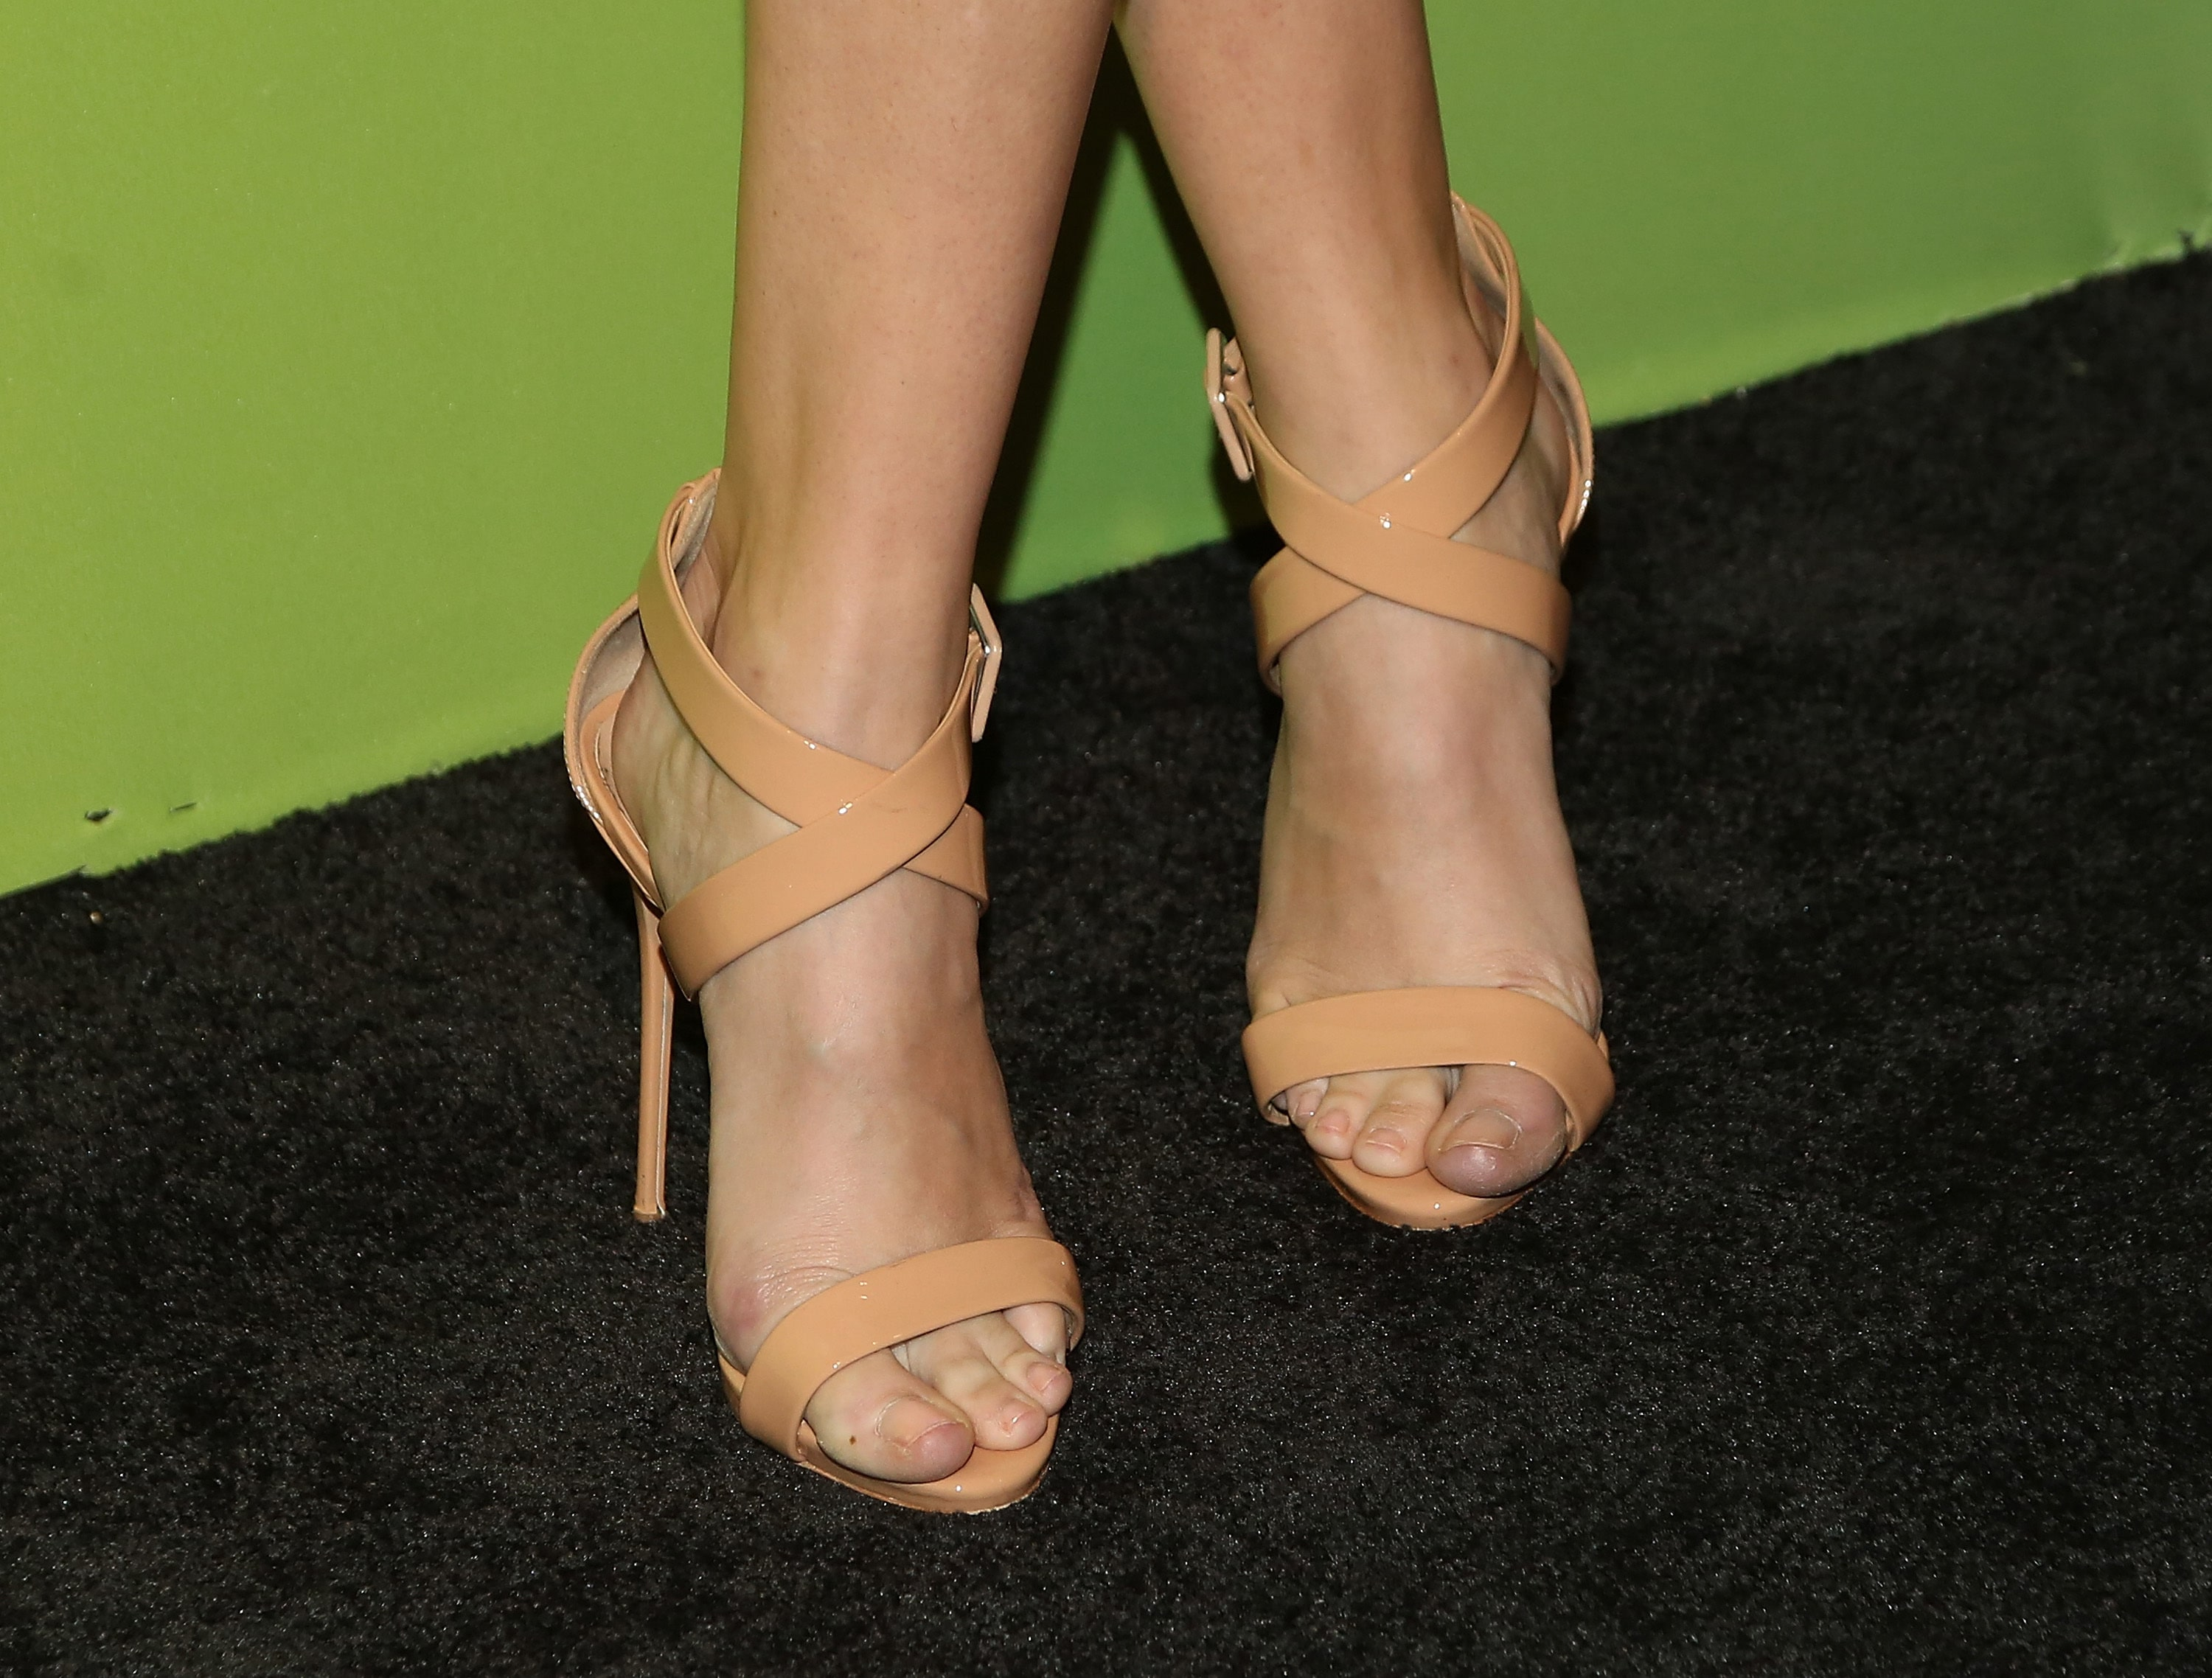 Danielle Panabaker Beautiful Feet Image